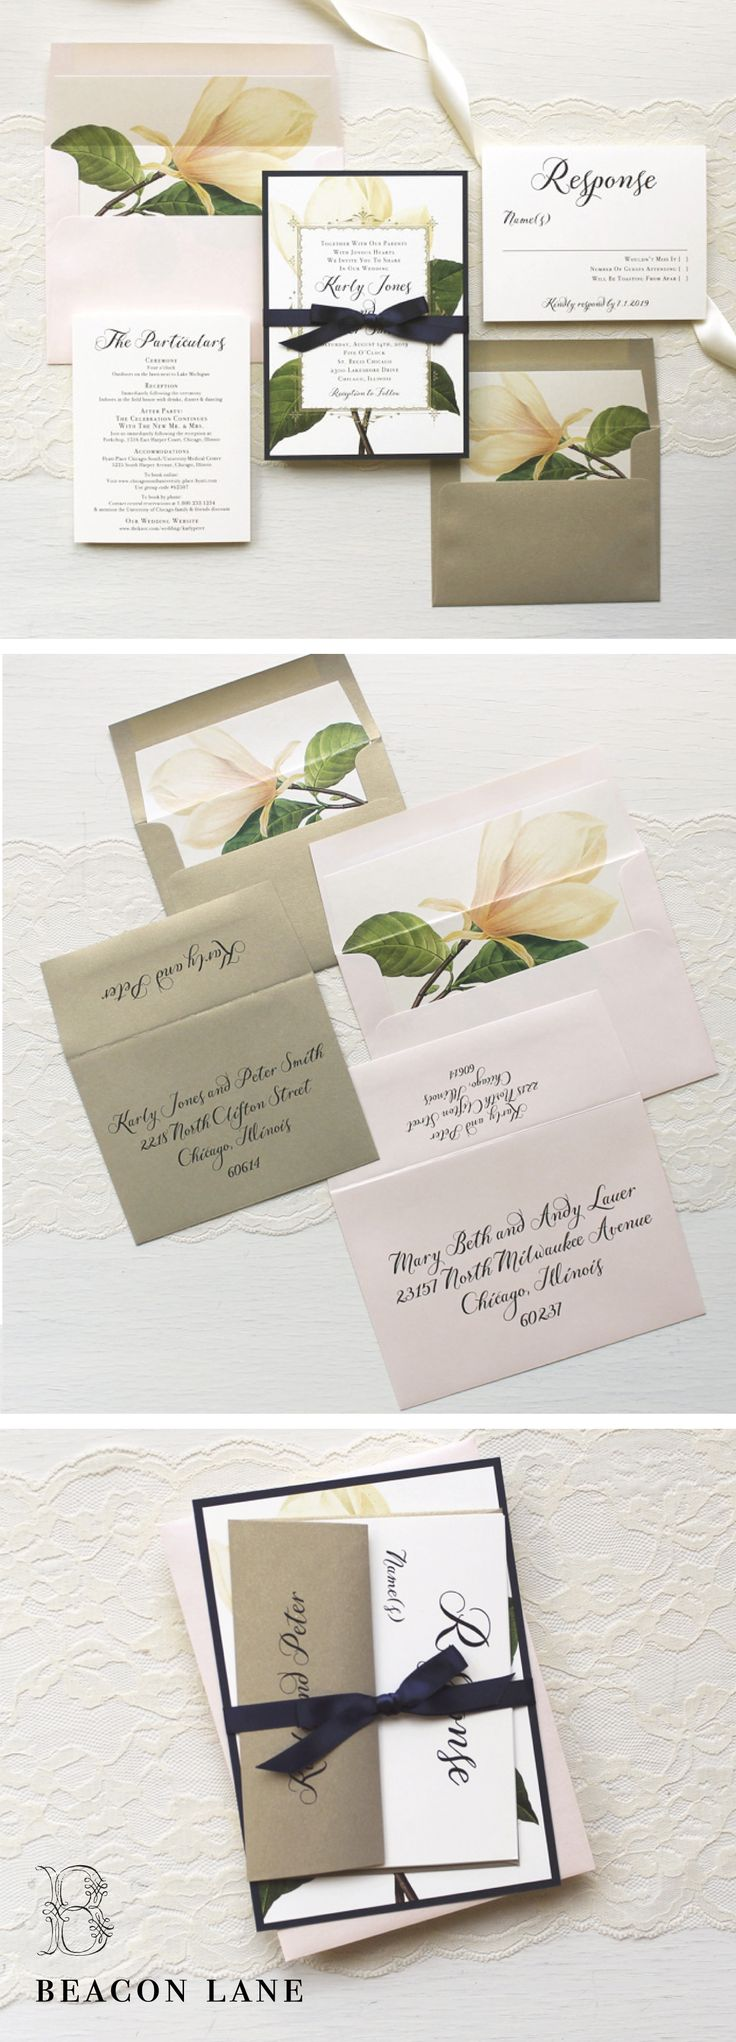 A mix of vintage florals and gold metallic, these Sweet Magnolia wedding invitations have just the right amount of glam. They're inspired by an elegant garden themed wedding. @beaconln